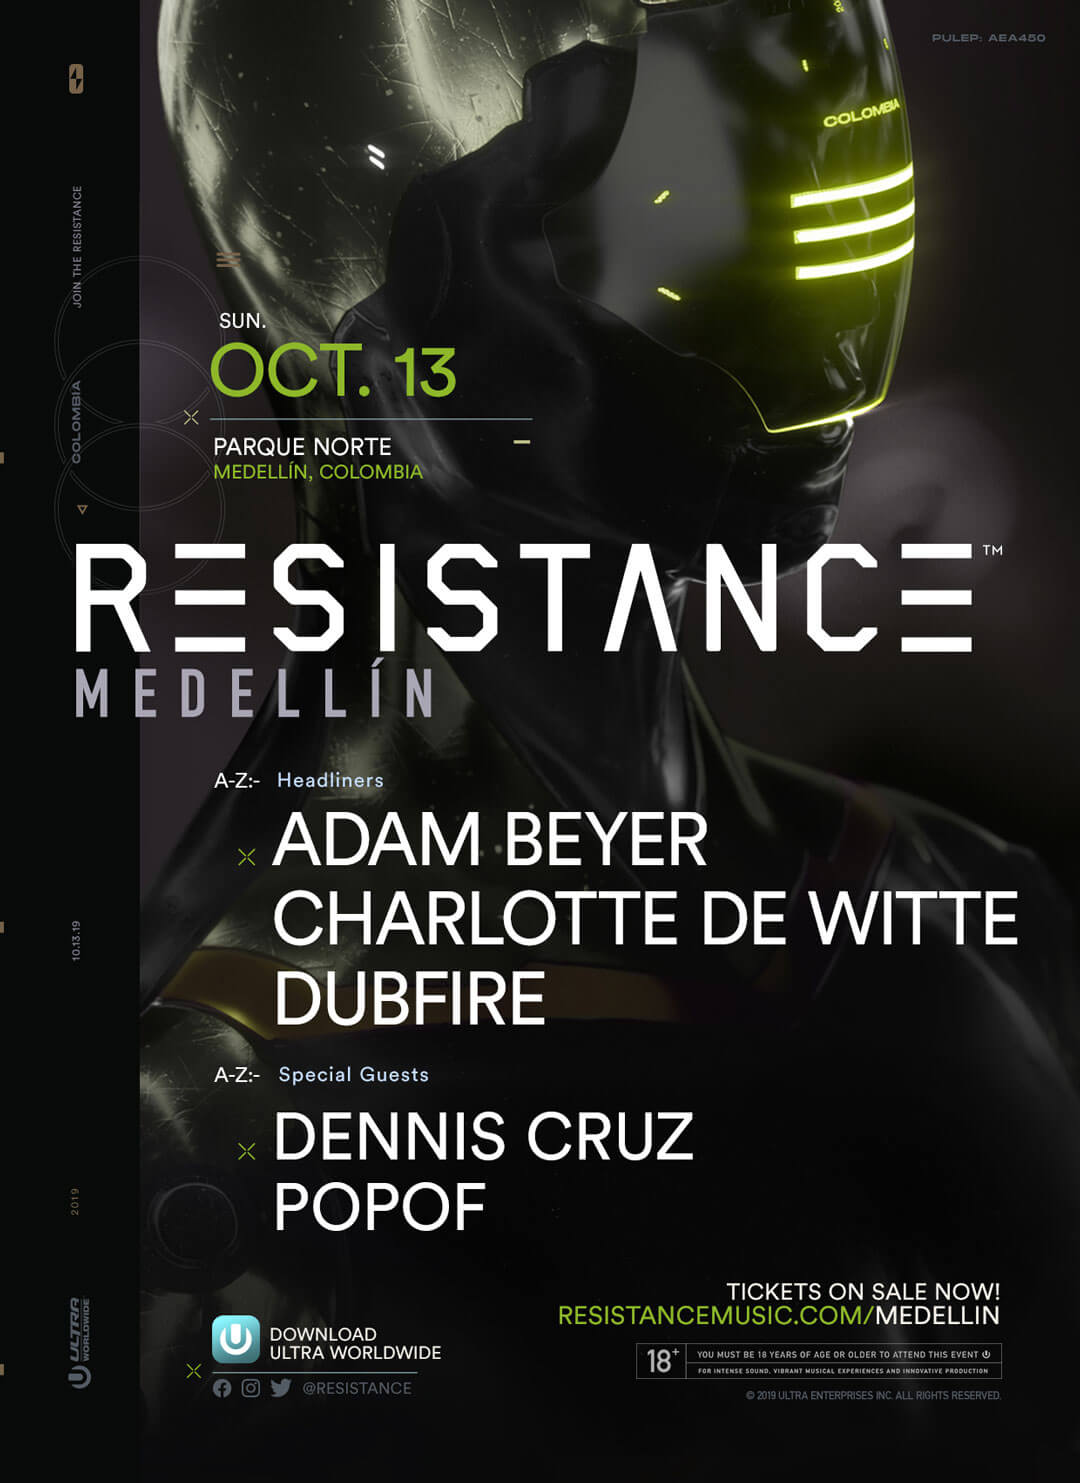 RESISTANCE Medellín Announces High-Energy Lineup